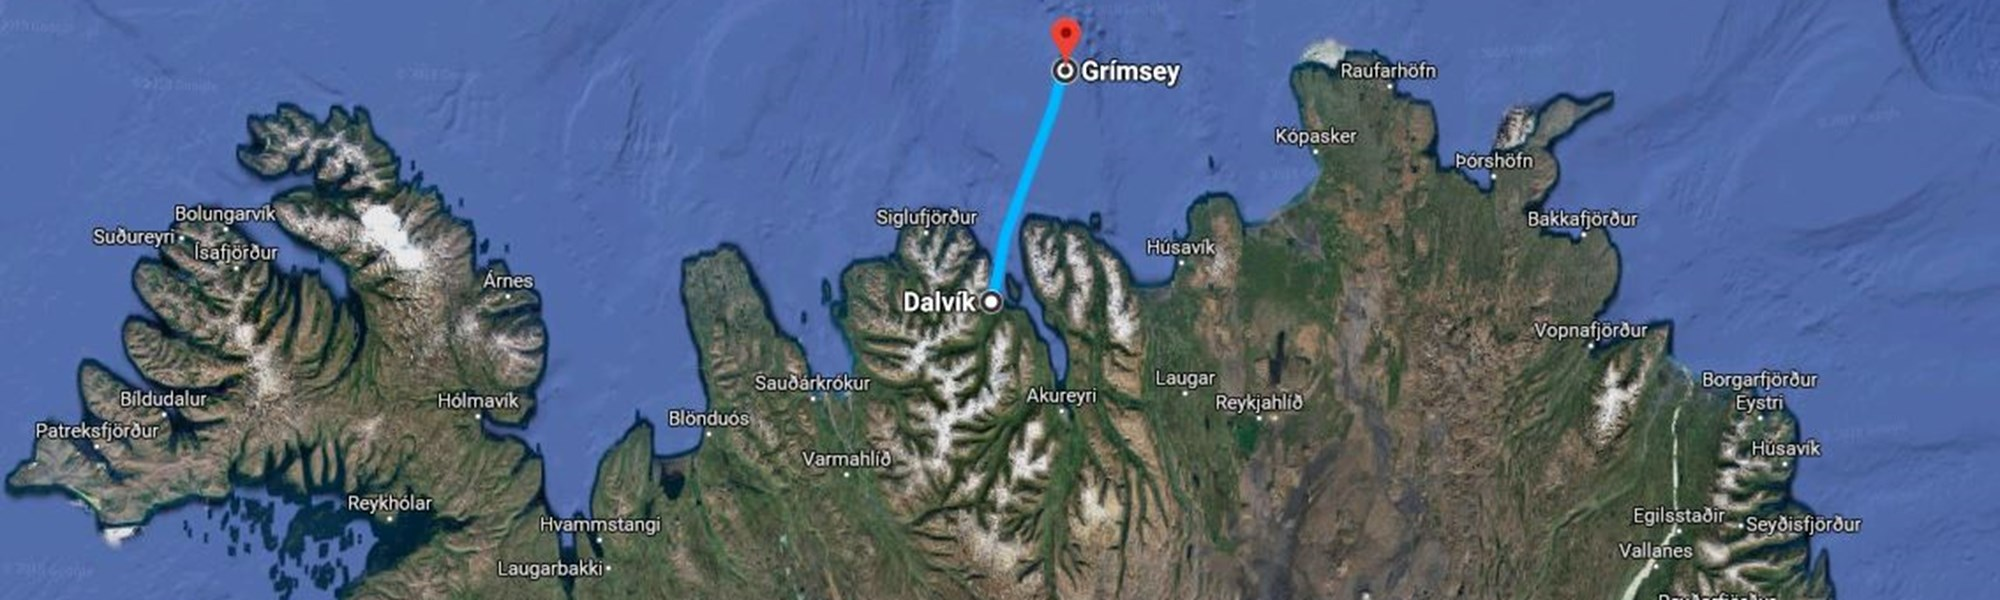 Map of the Grimsey day tour